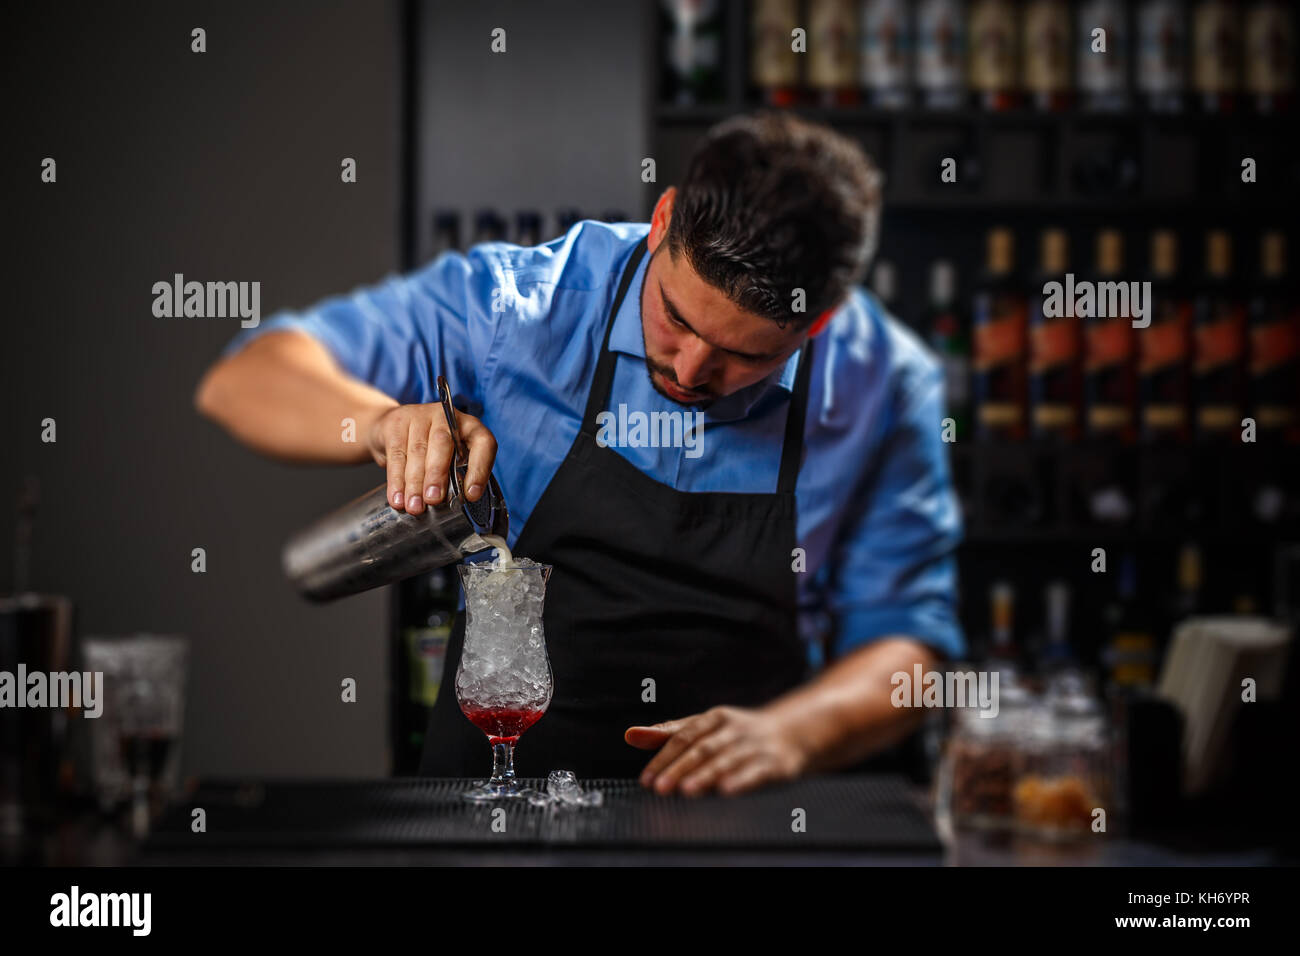 Bartender pouring fresh cocktail in glass - Stock Image